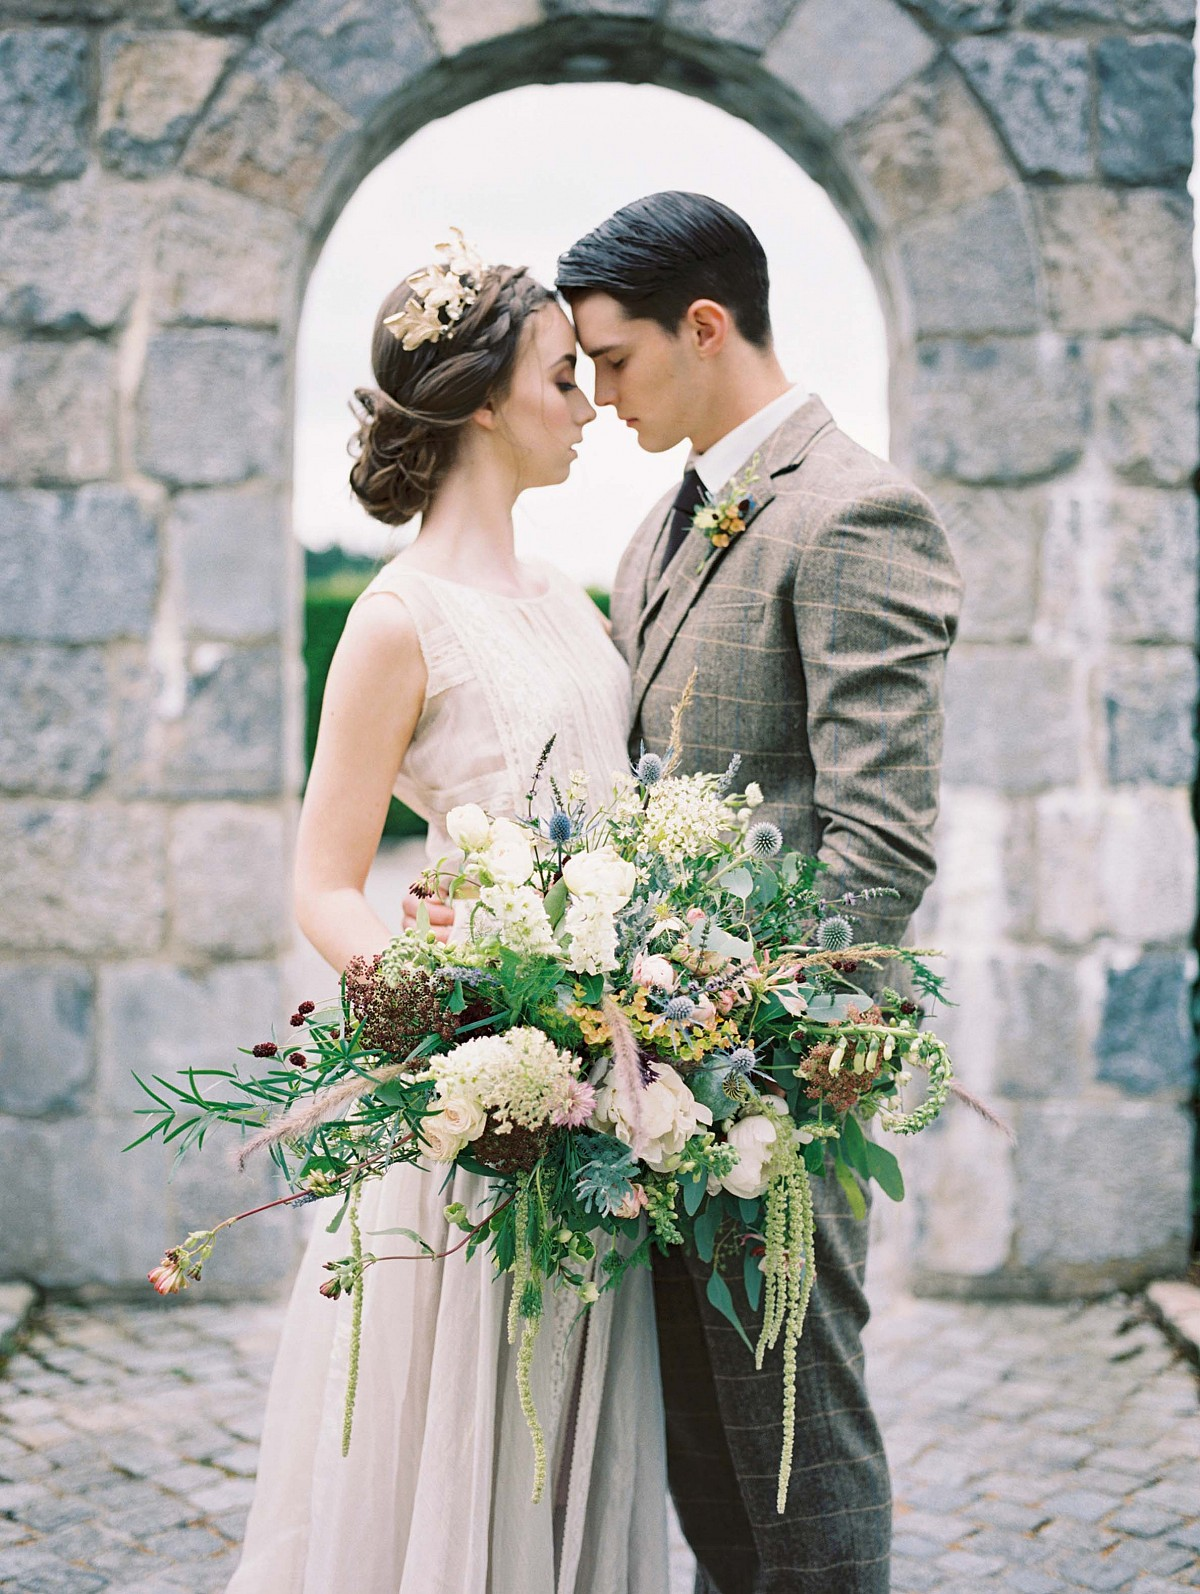 Nostalgic Irish Wedding in Earthy Green tones